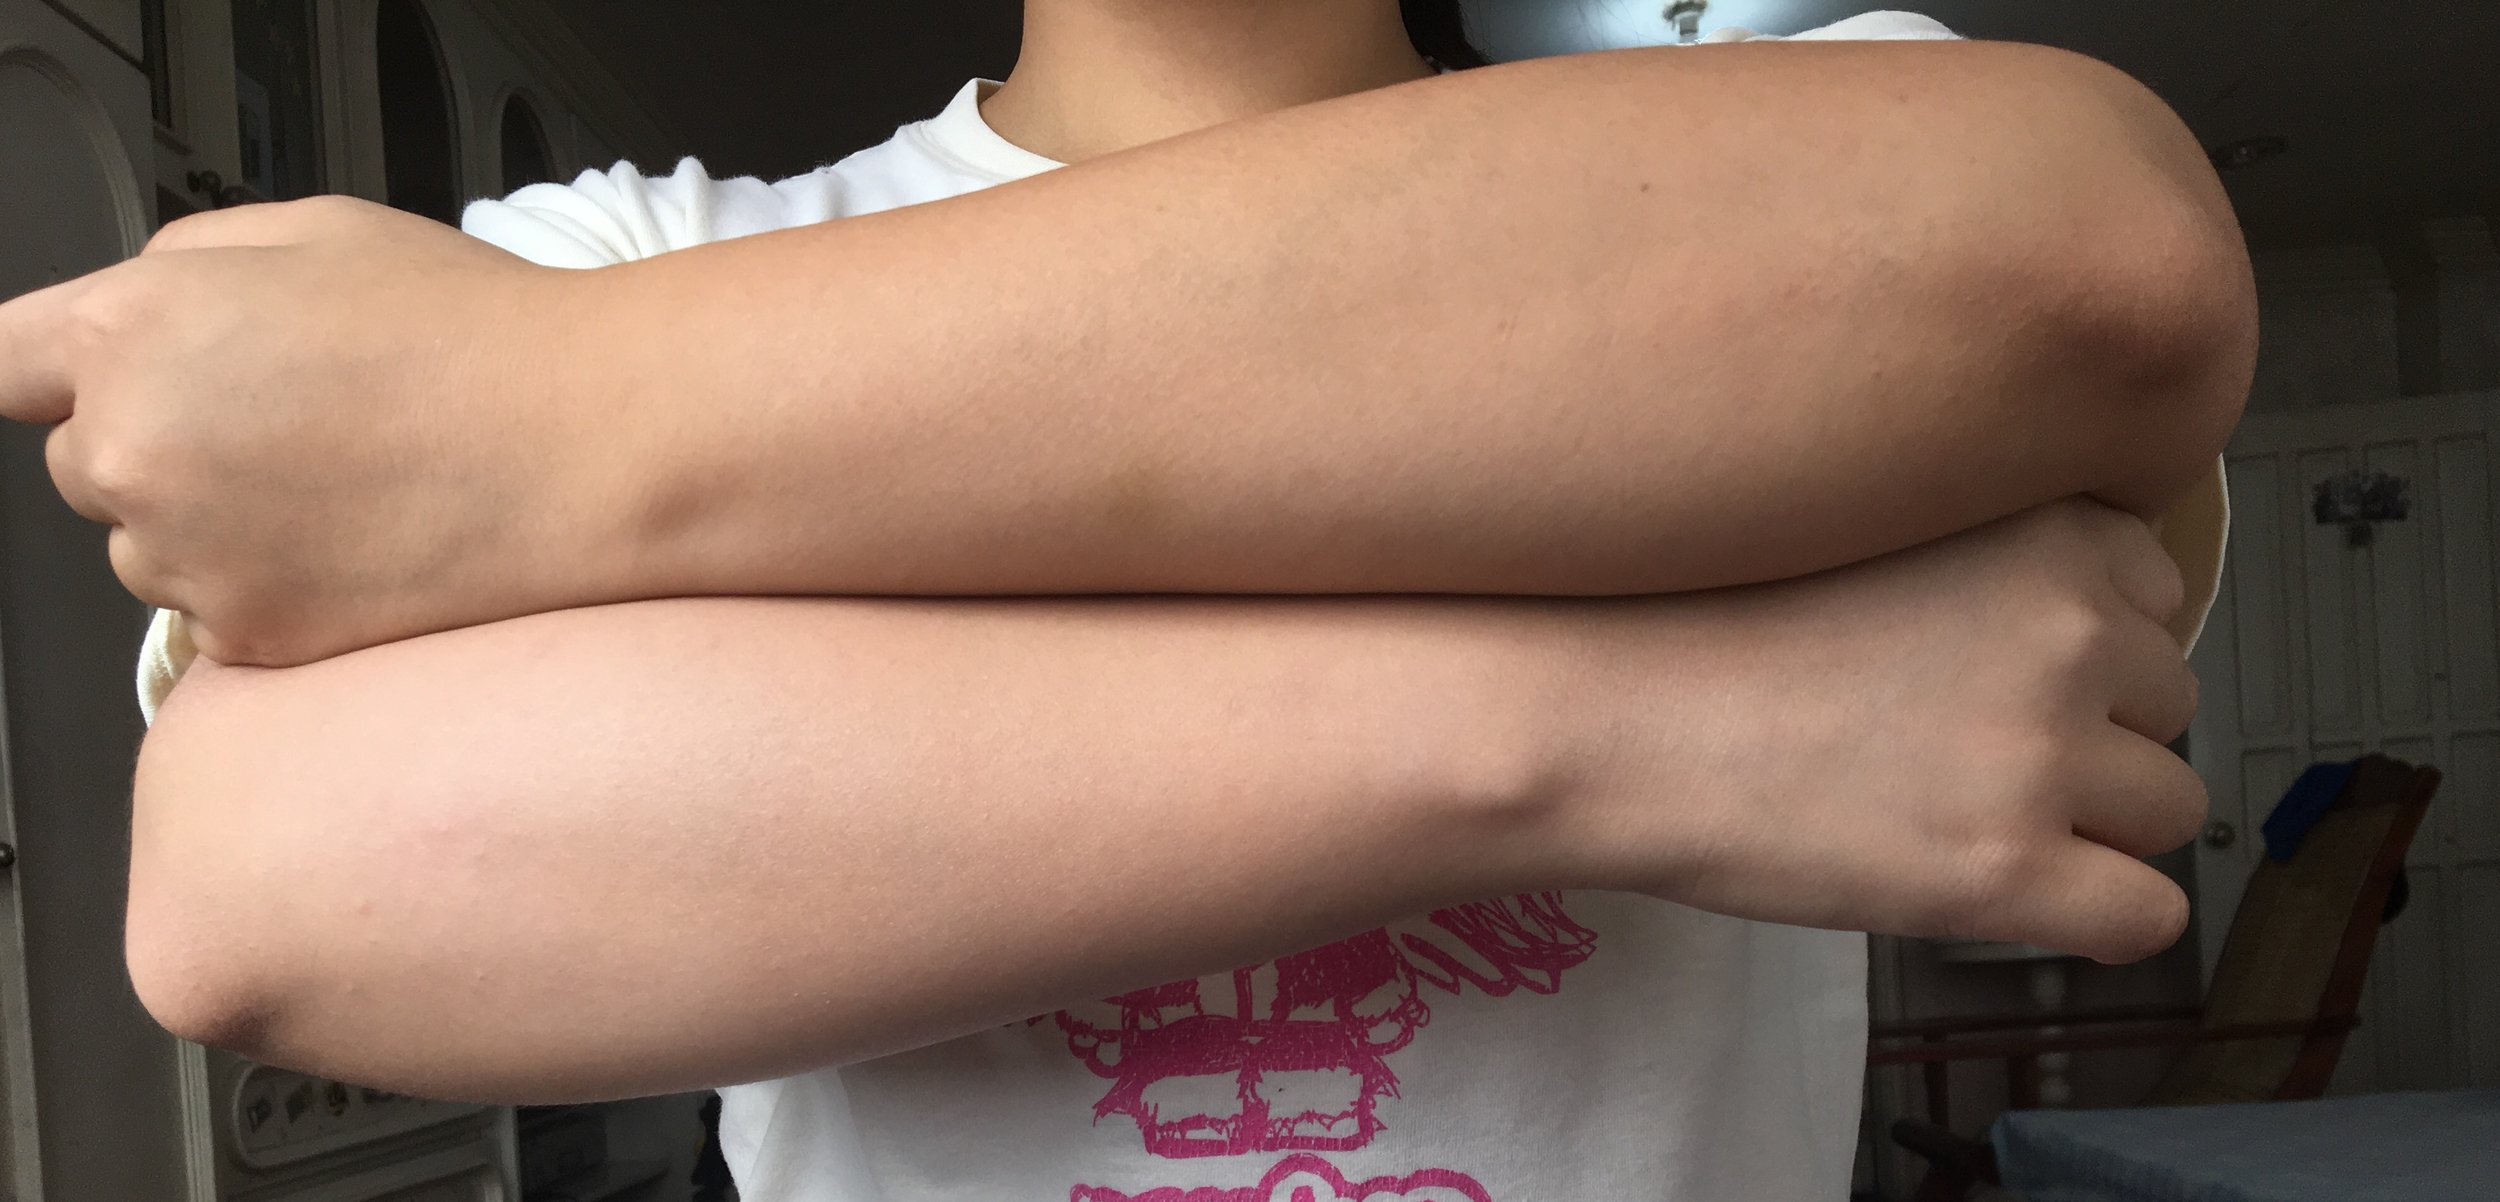 The arm on top shows my commuter tan, while I applied the Shiroashi Hime to the arm below!